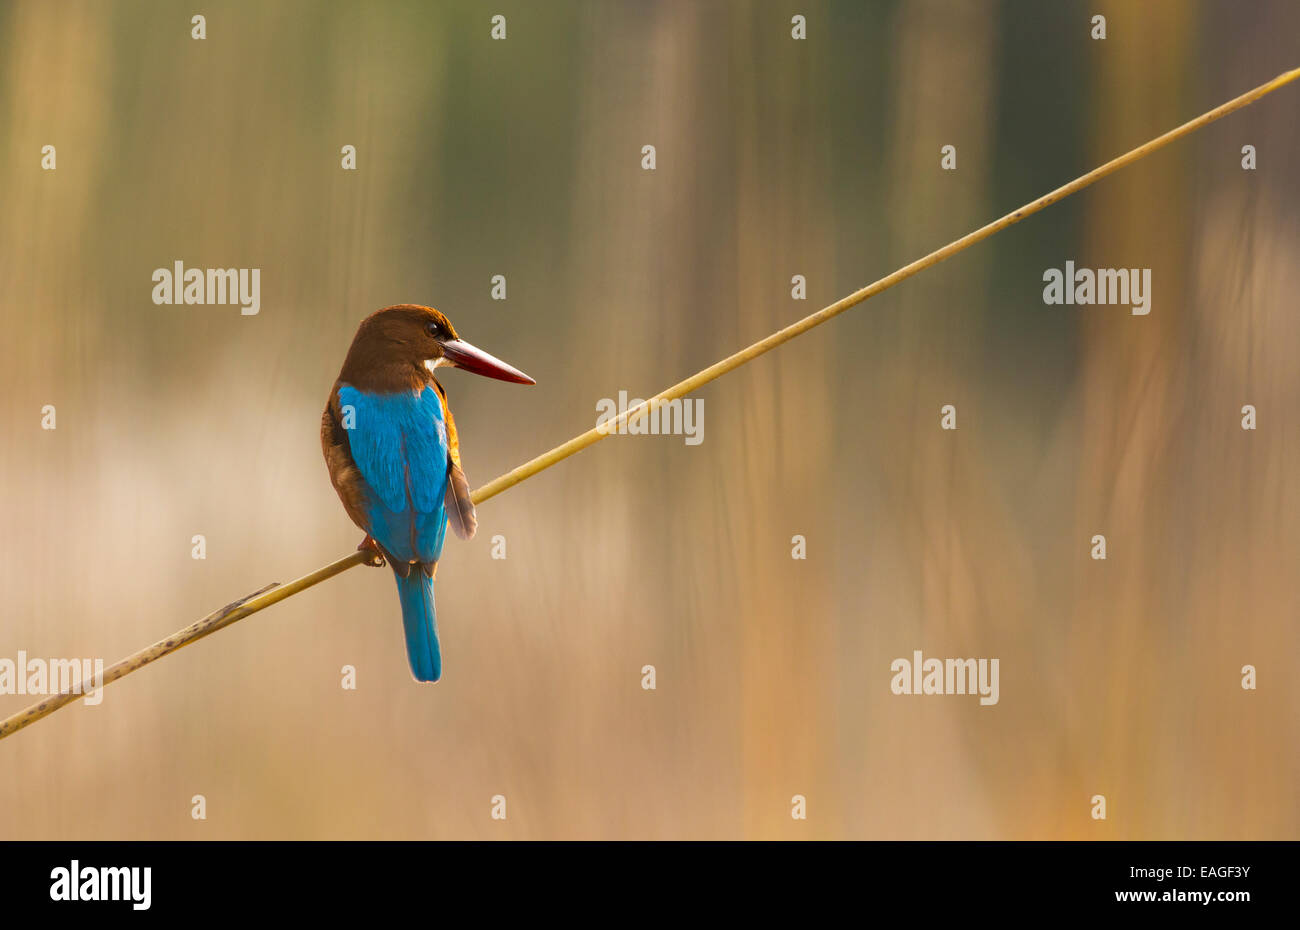 A White-throated Kingfisher (Halcyon smyrnensis) in India's Bandhavgarh National Park. - Stock Image